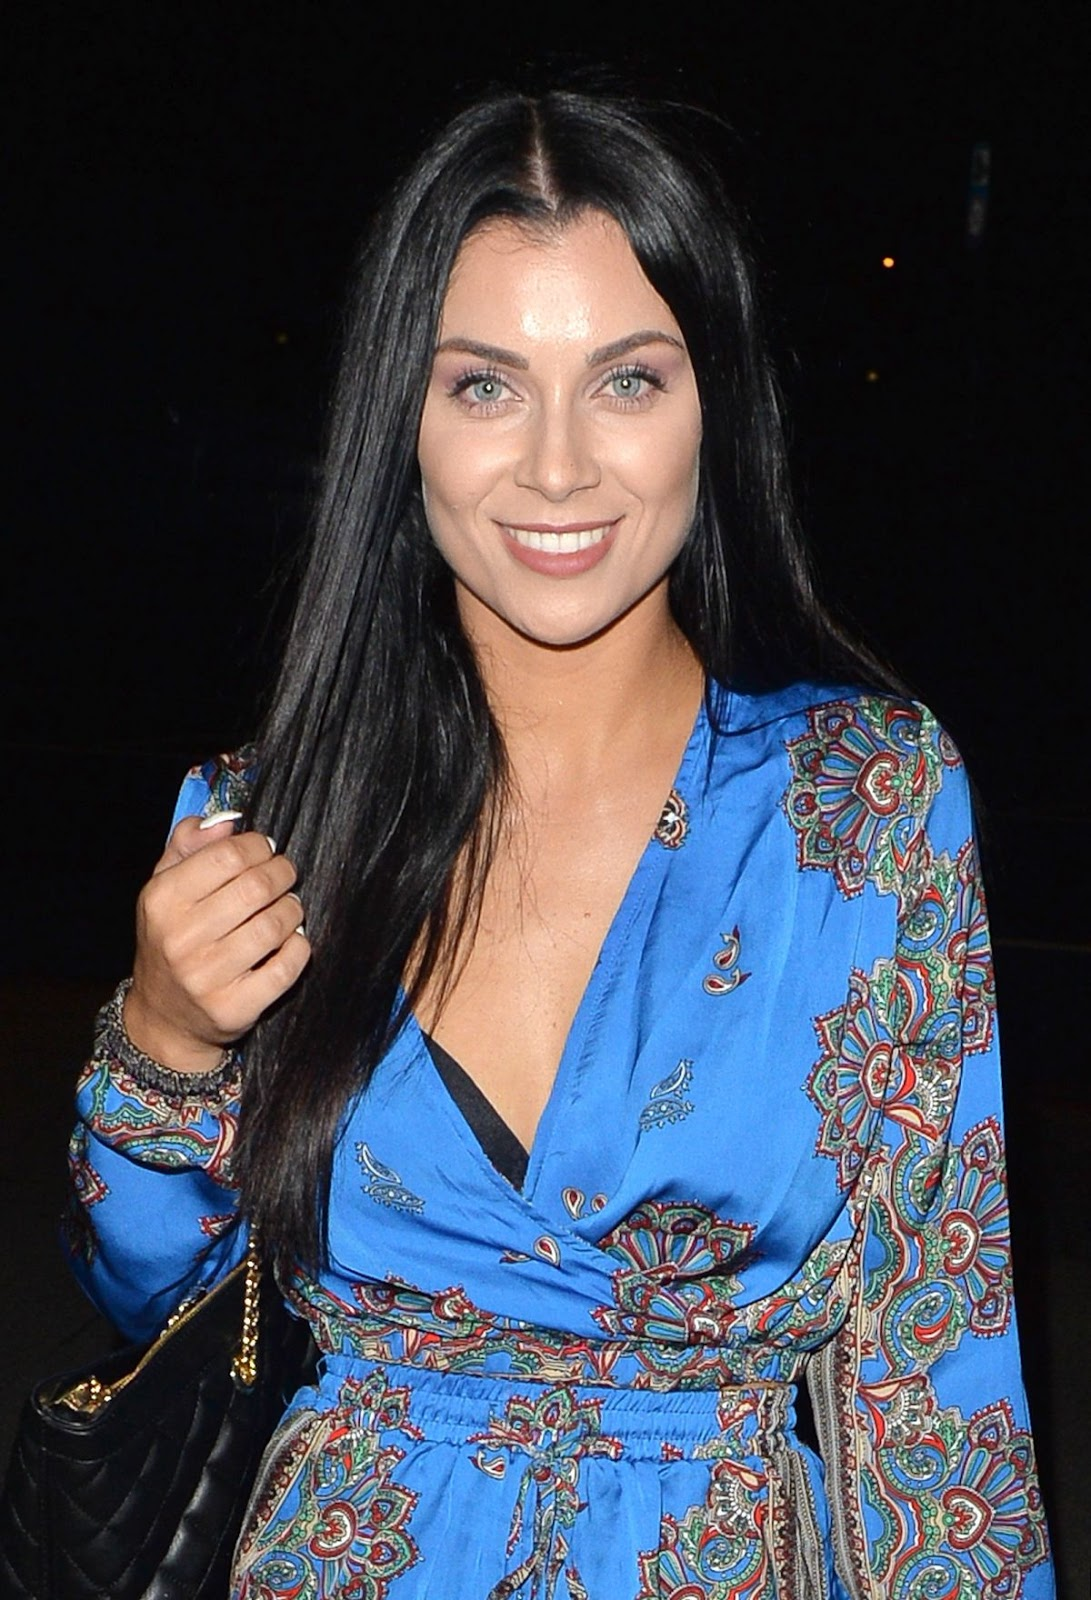 Photos of Cally Jane Beech in Blue dress Night Out in London